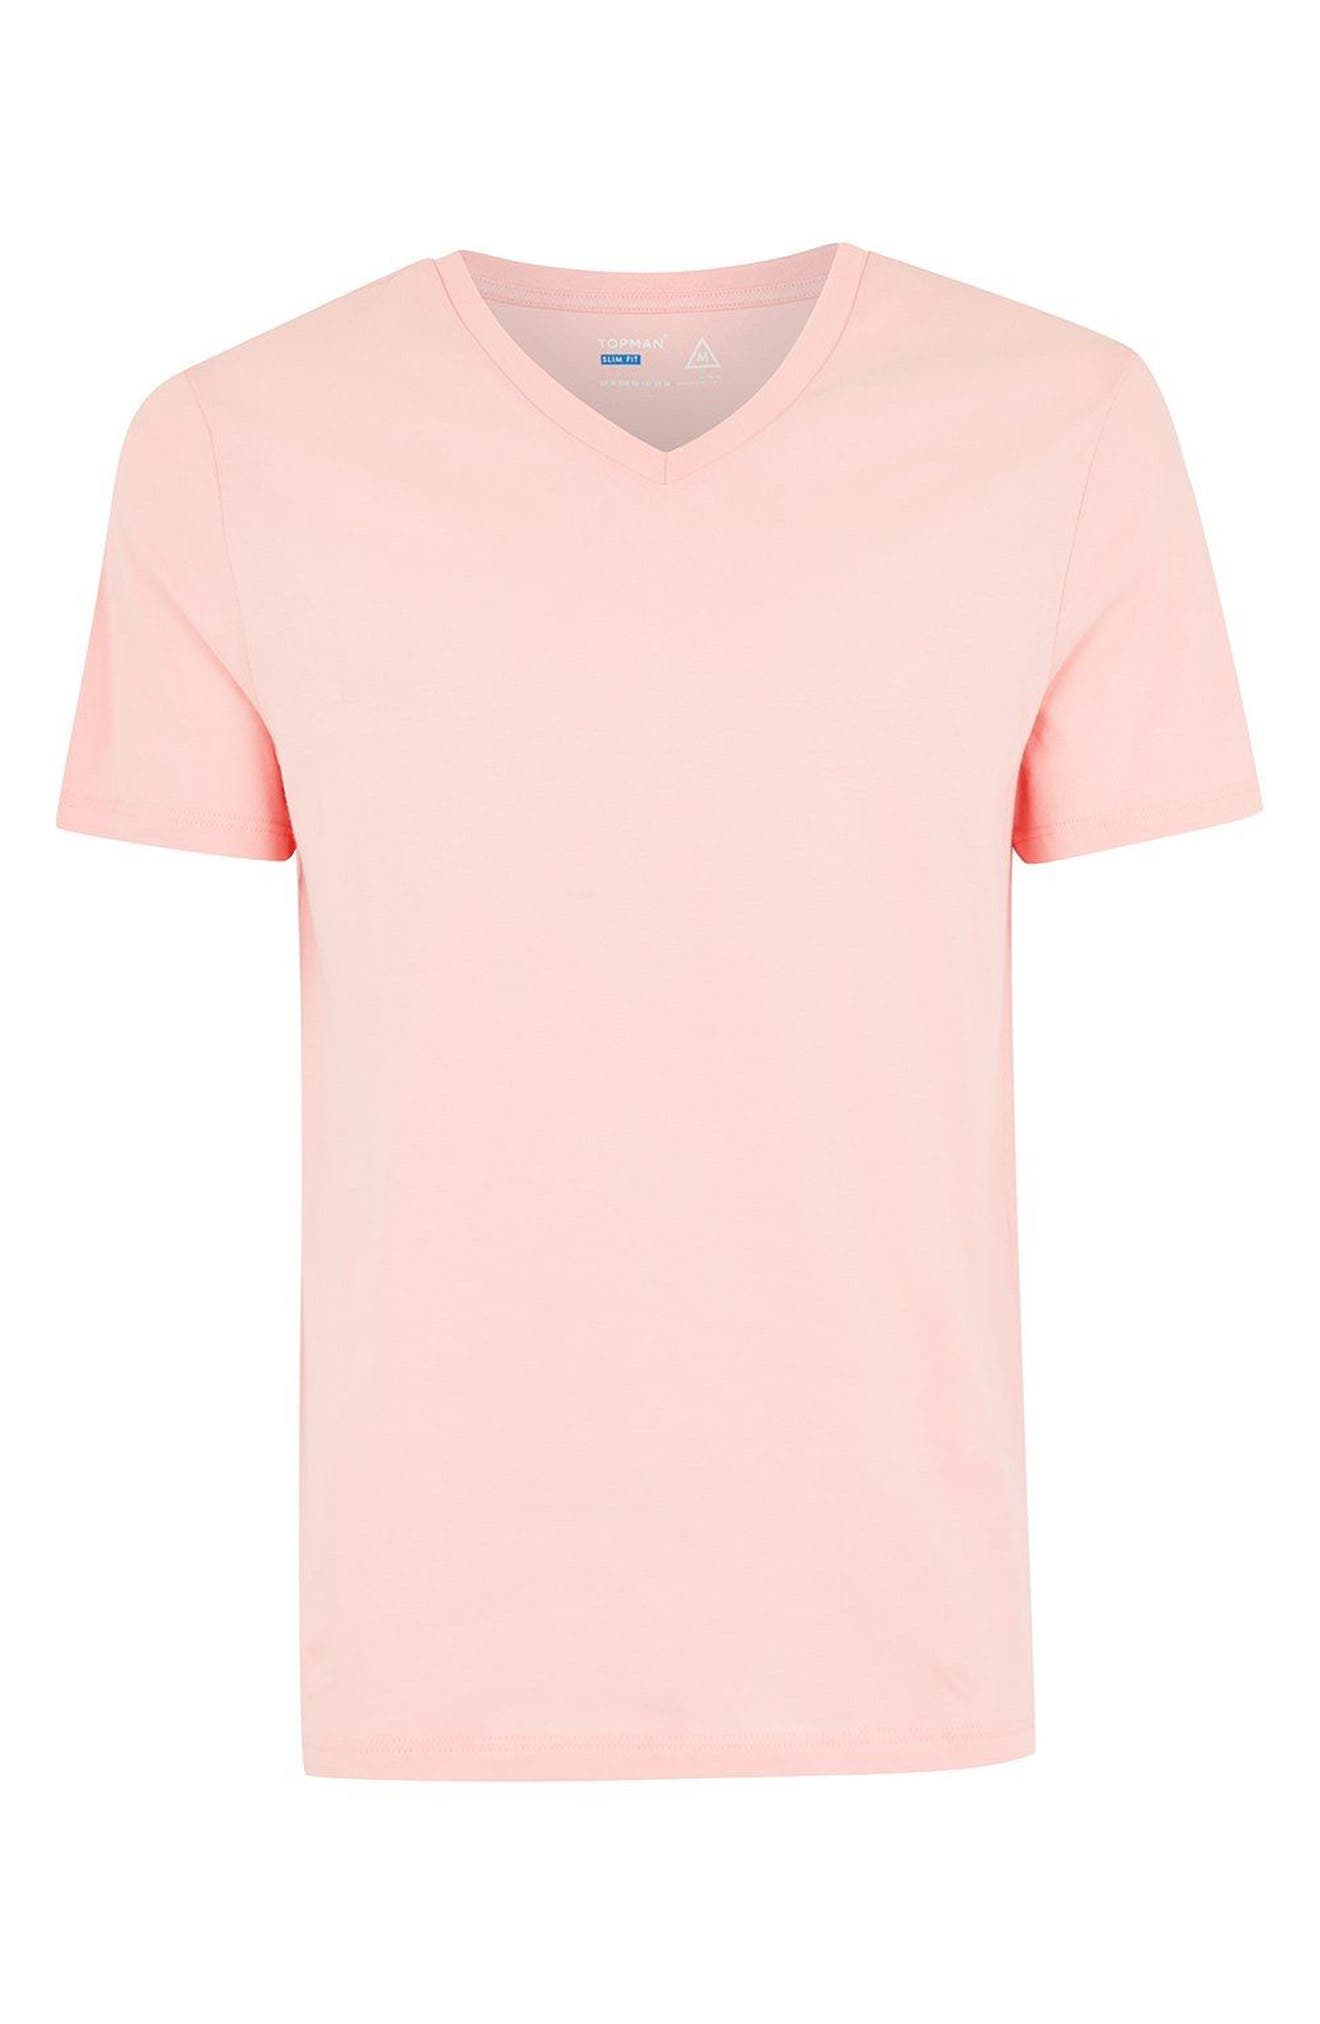 V-Neck T-Shirt,                             Alternate thumbnail 3, color,                             651